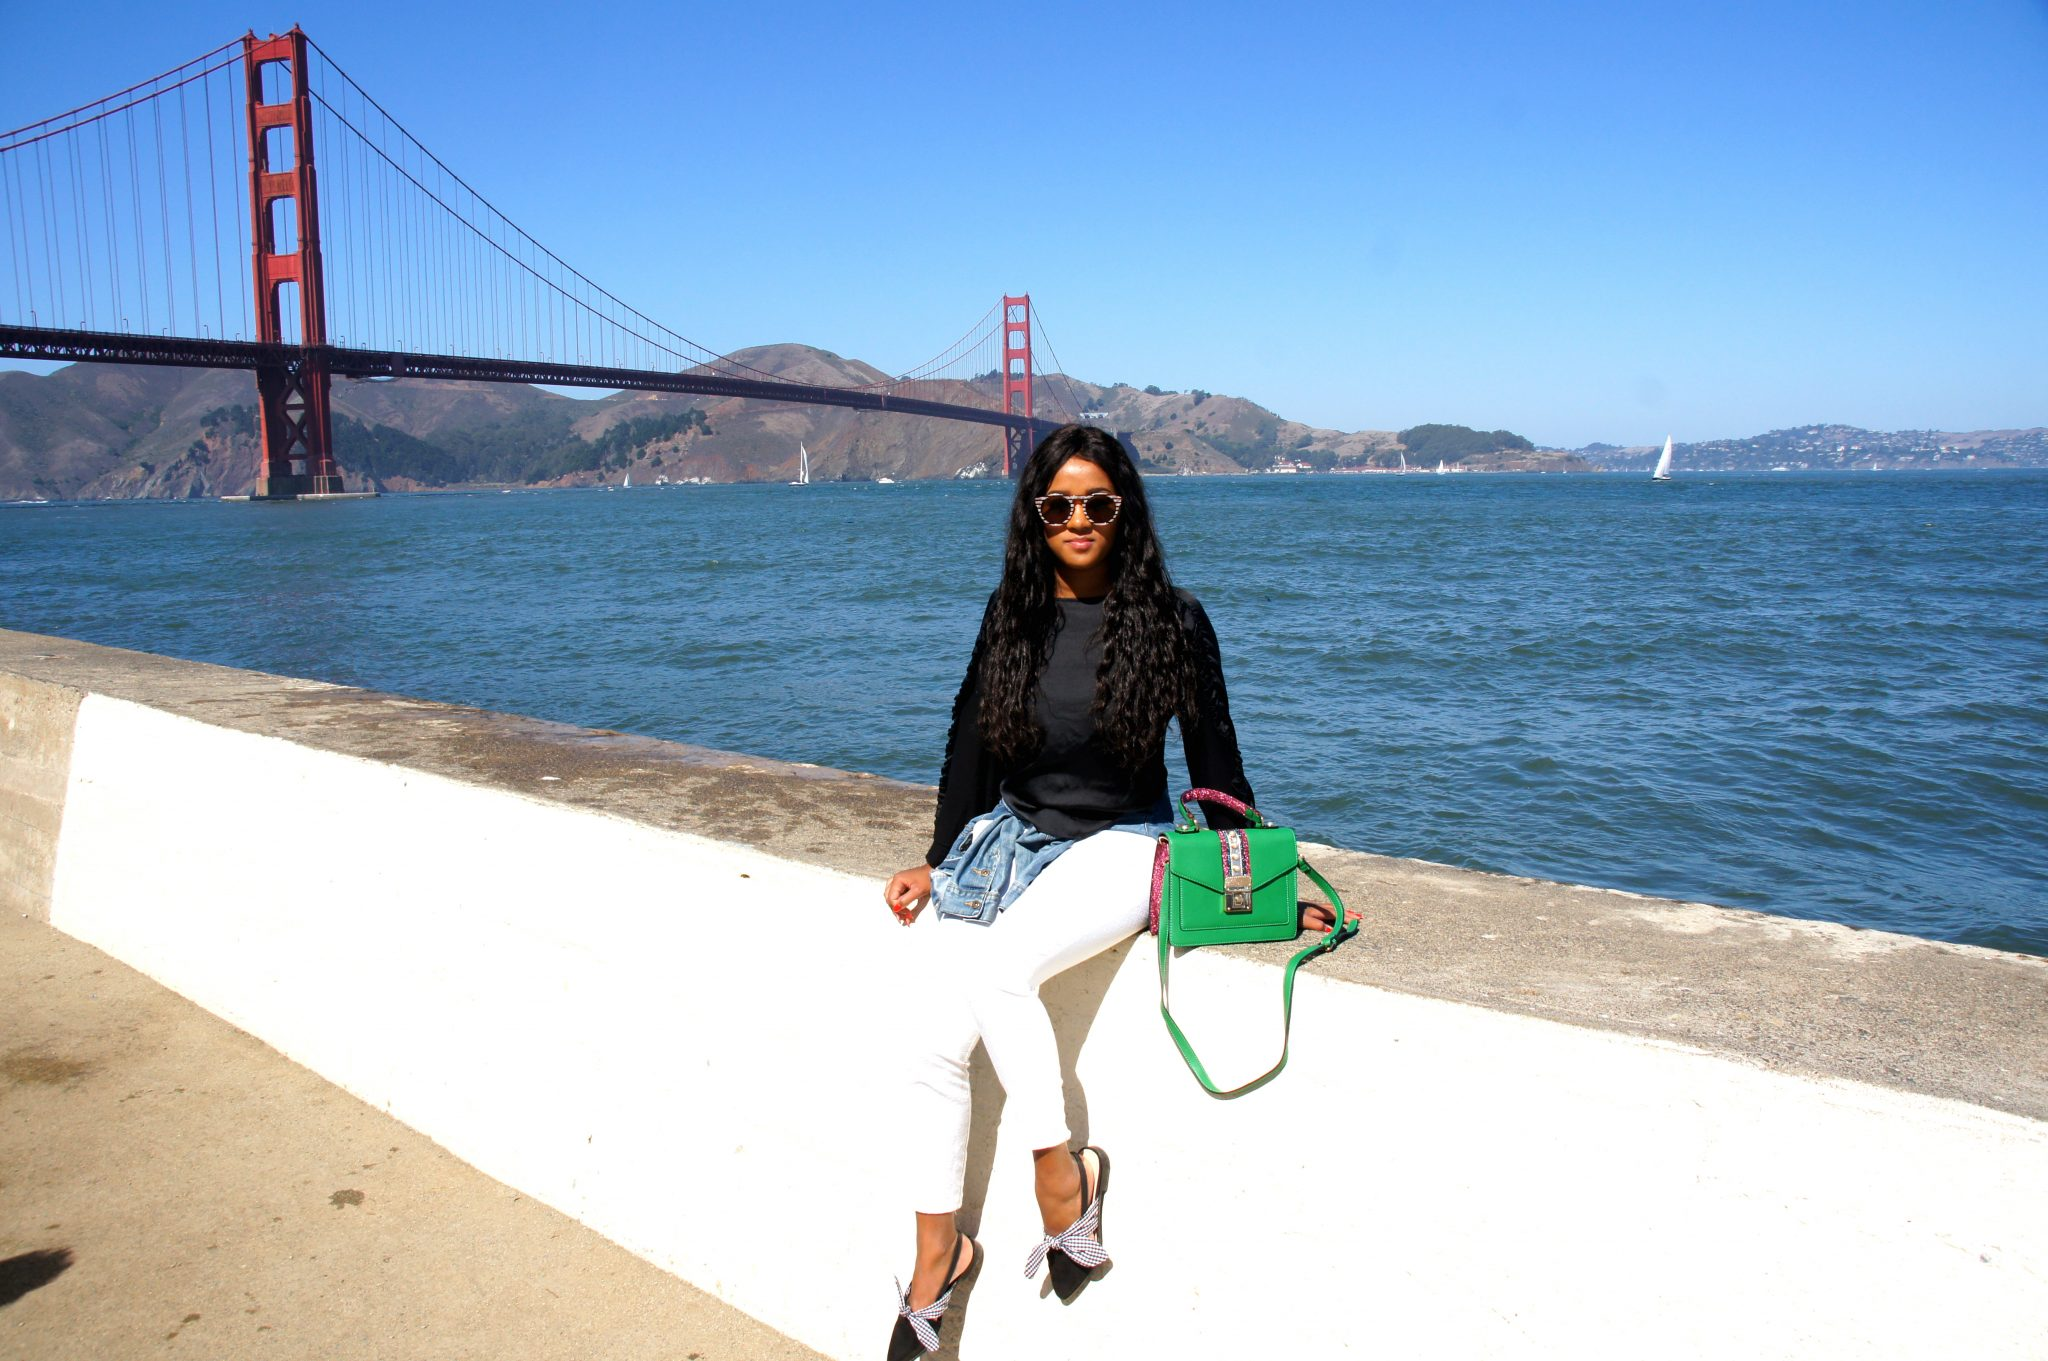 Me in front of the Golden Gate Bridge